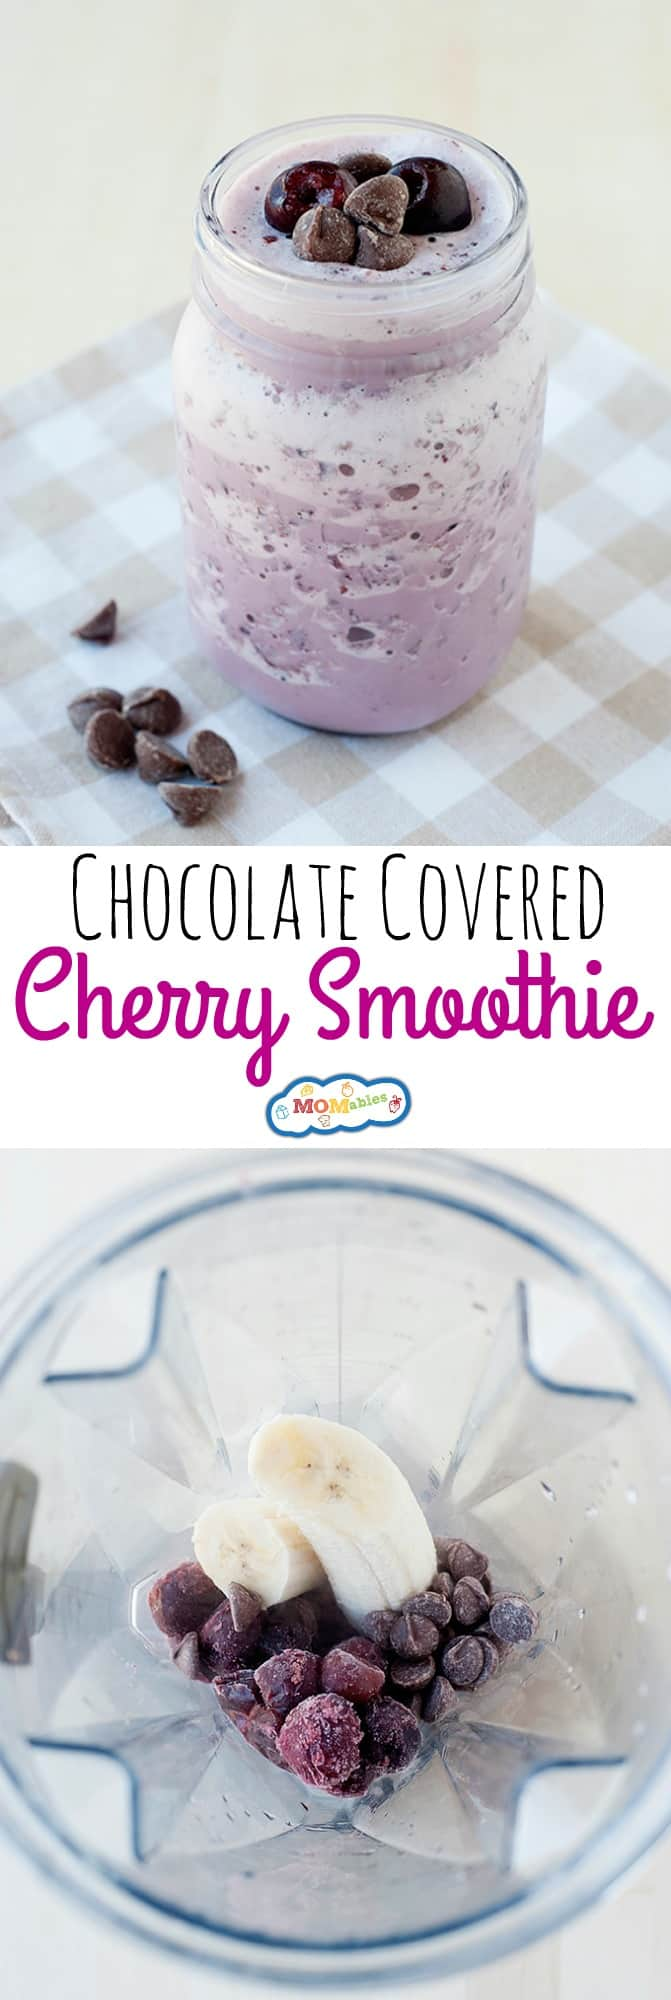 Looking for a delicious smoothie your kids will love? This Chocolate Covered Cherry Smoothie is full of fruity flavor, plus it's easy to make!